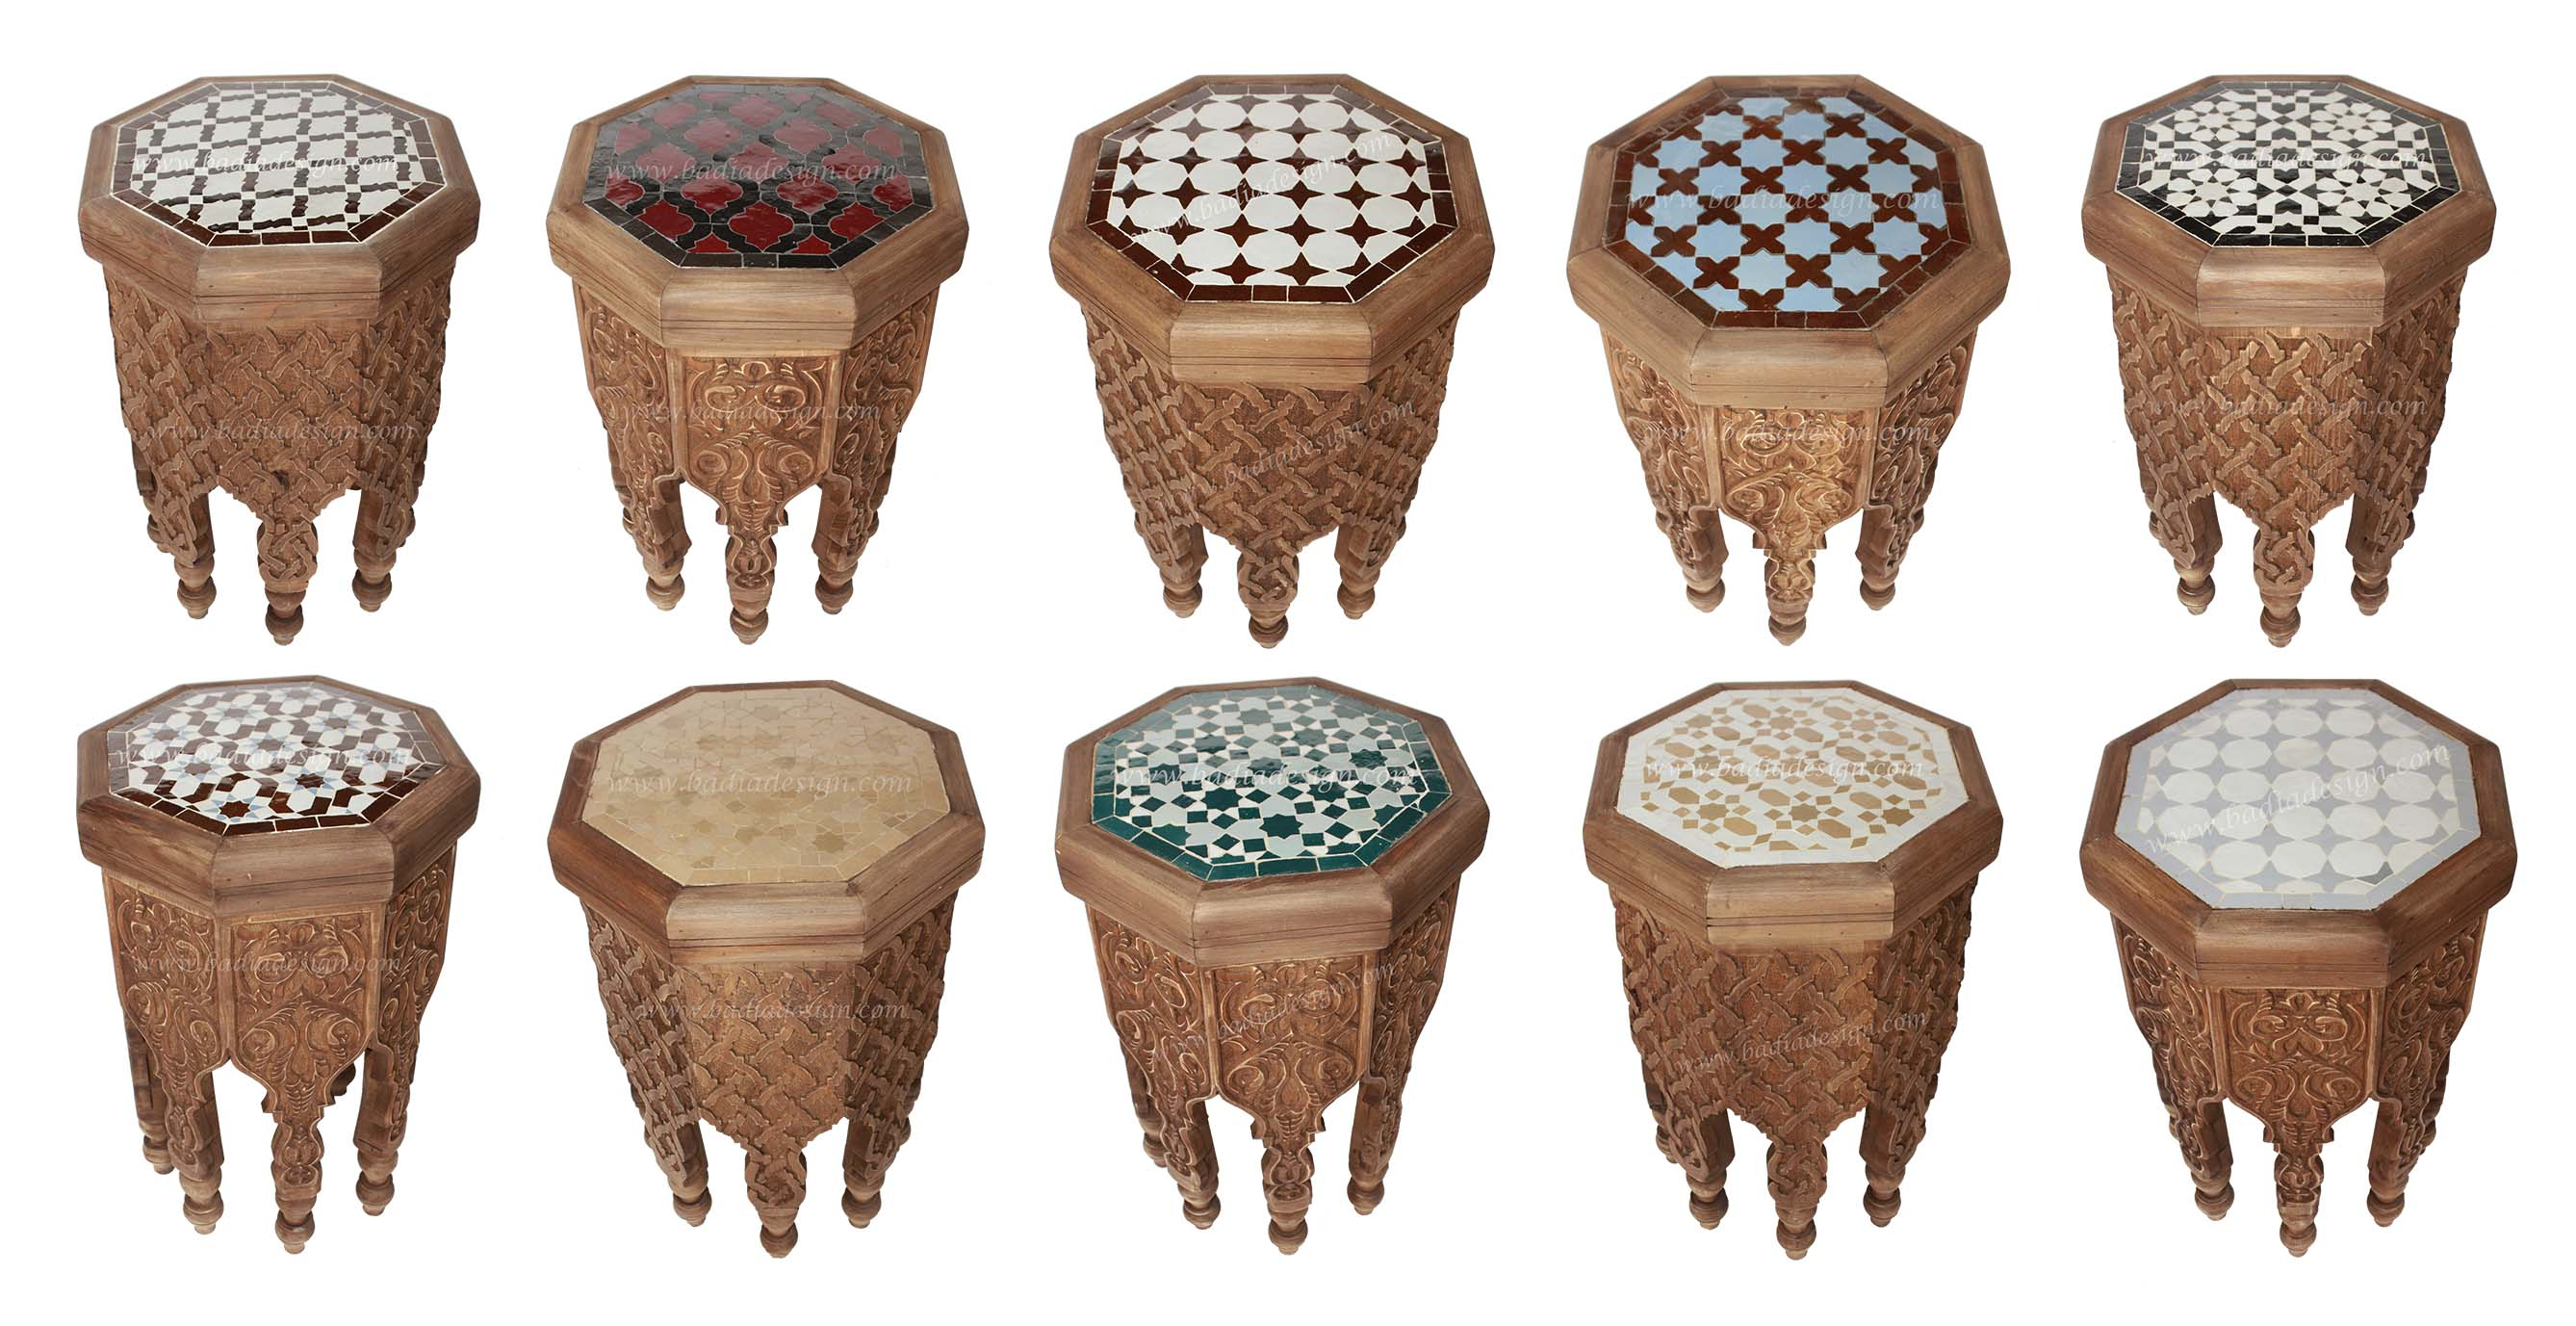 moroccan-tile-top-wooden-side-table-cw-st047.jpg